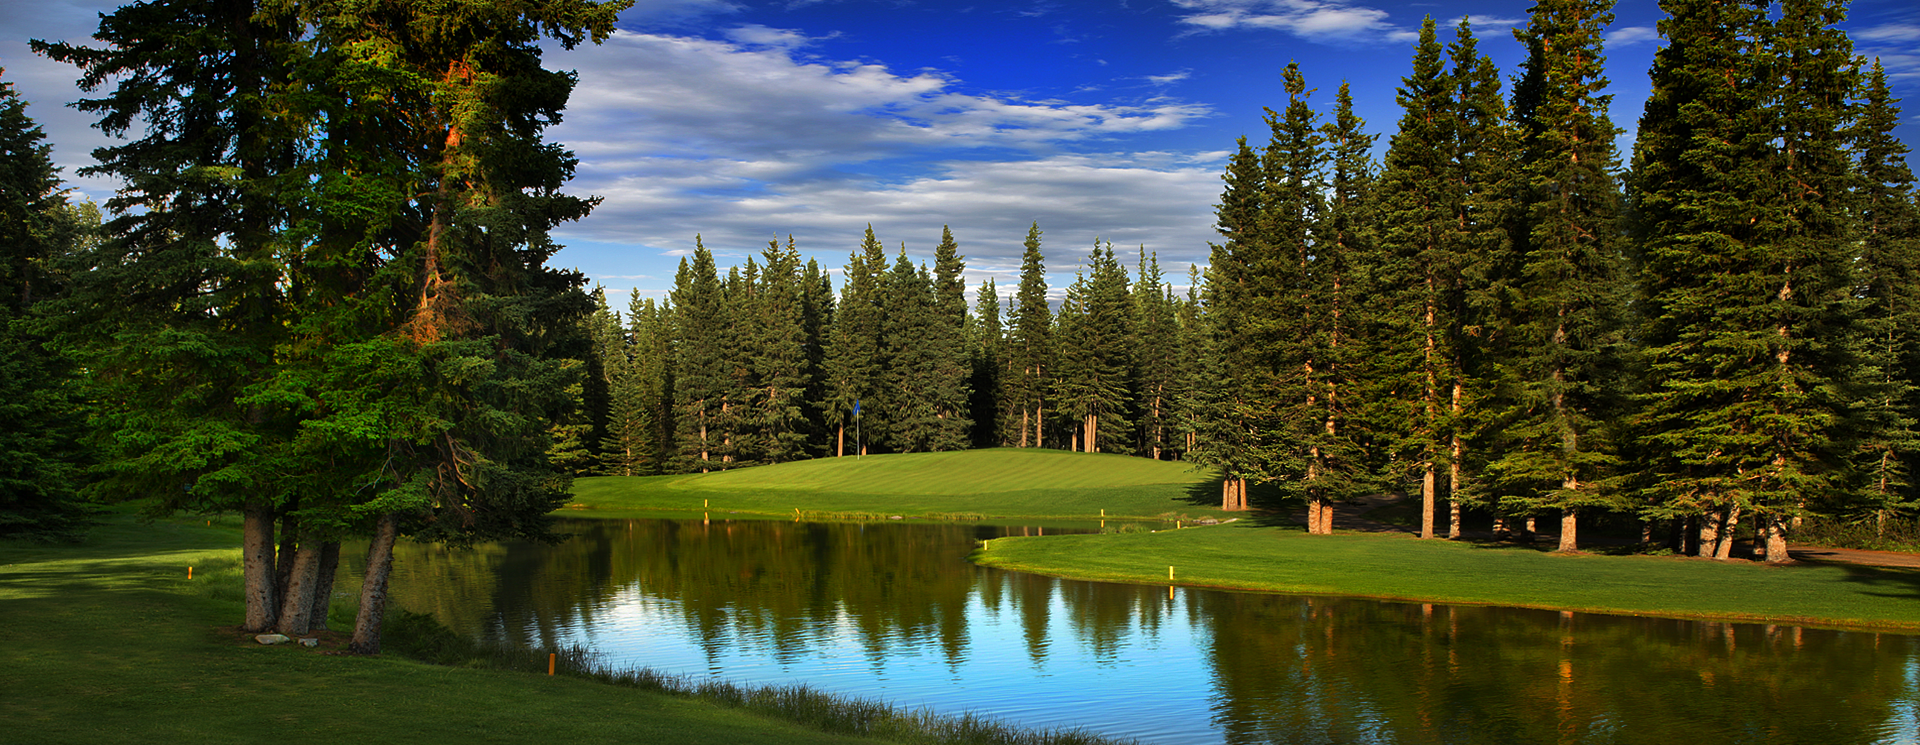 Redwood meadows golf and country club cover picture